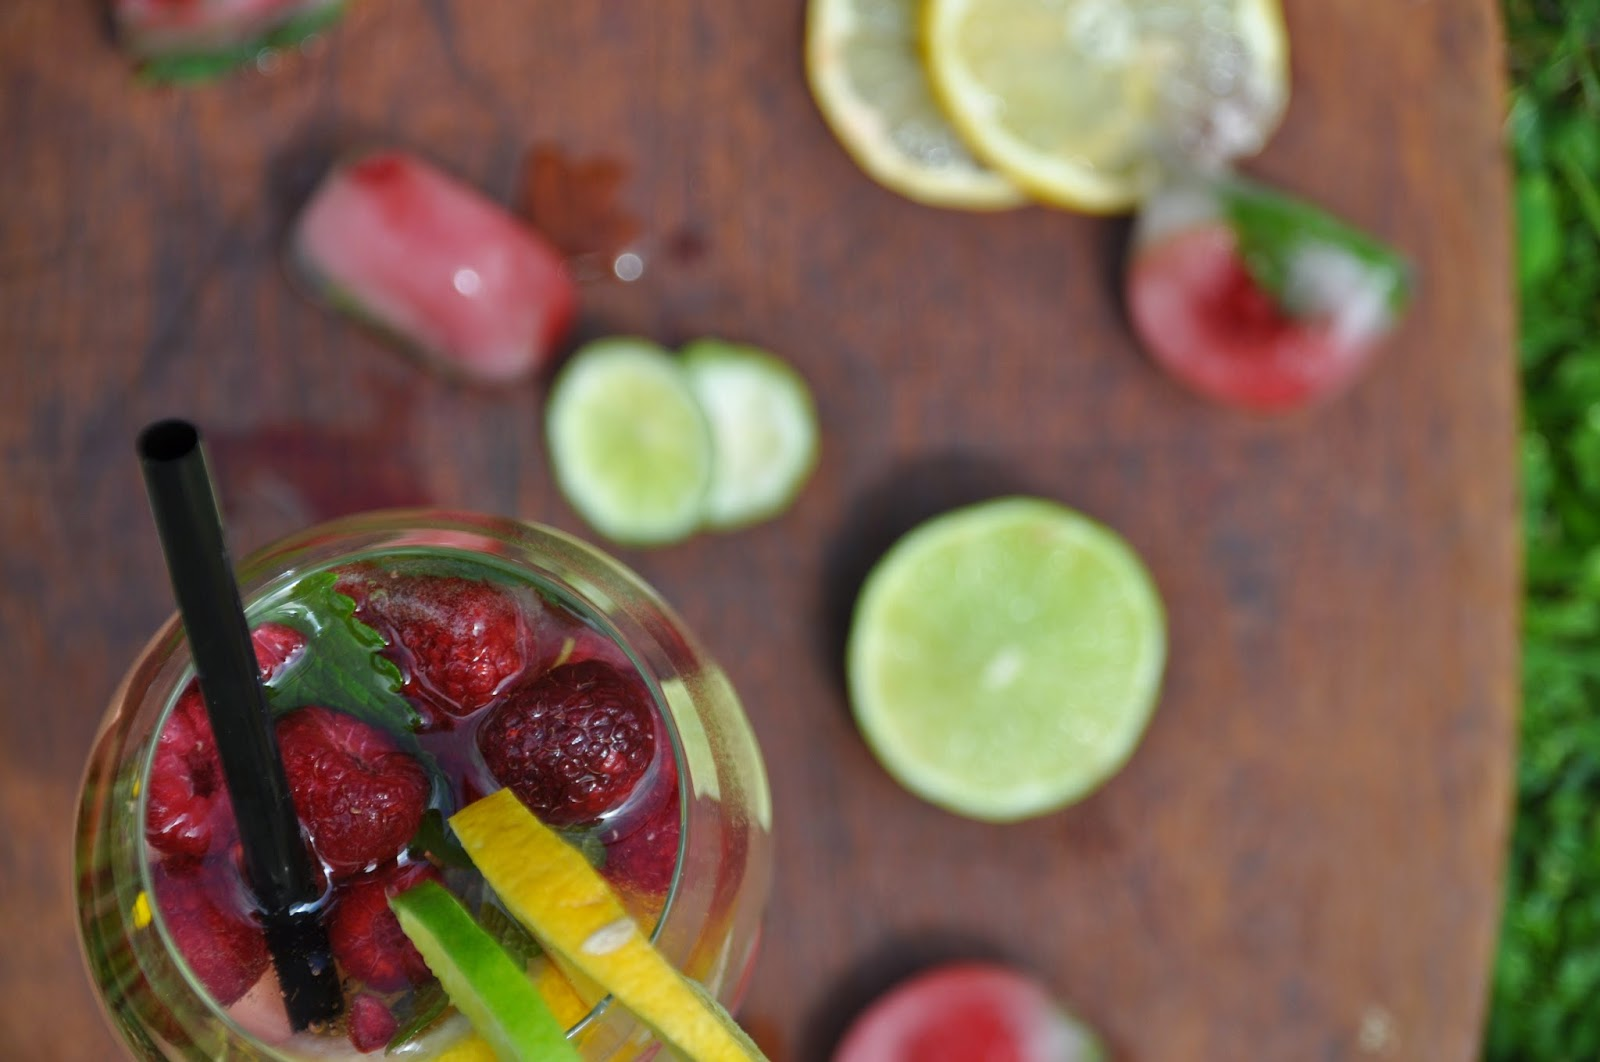 cocktail made of fresh fruits and elder syrup